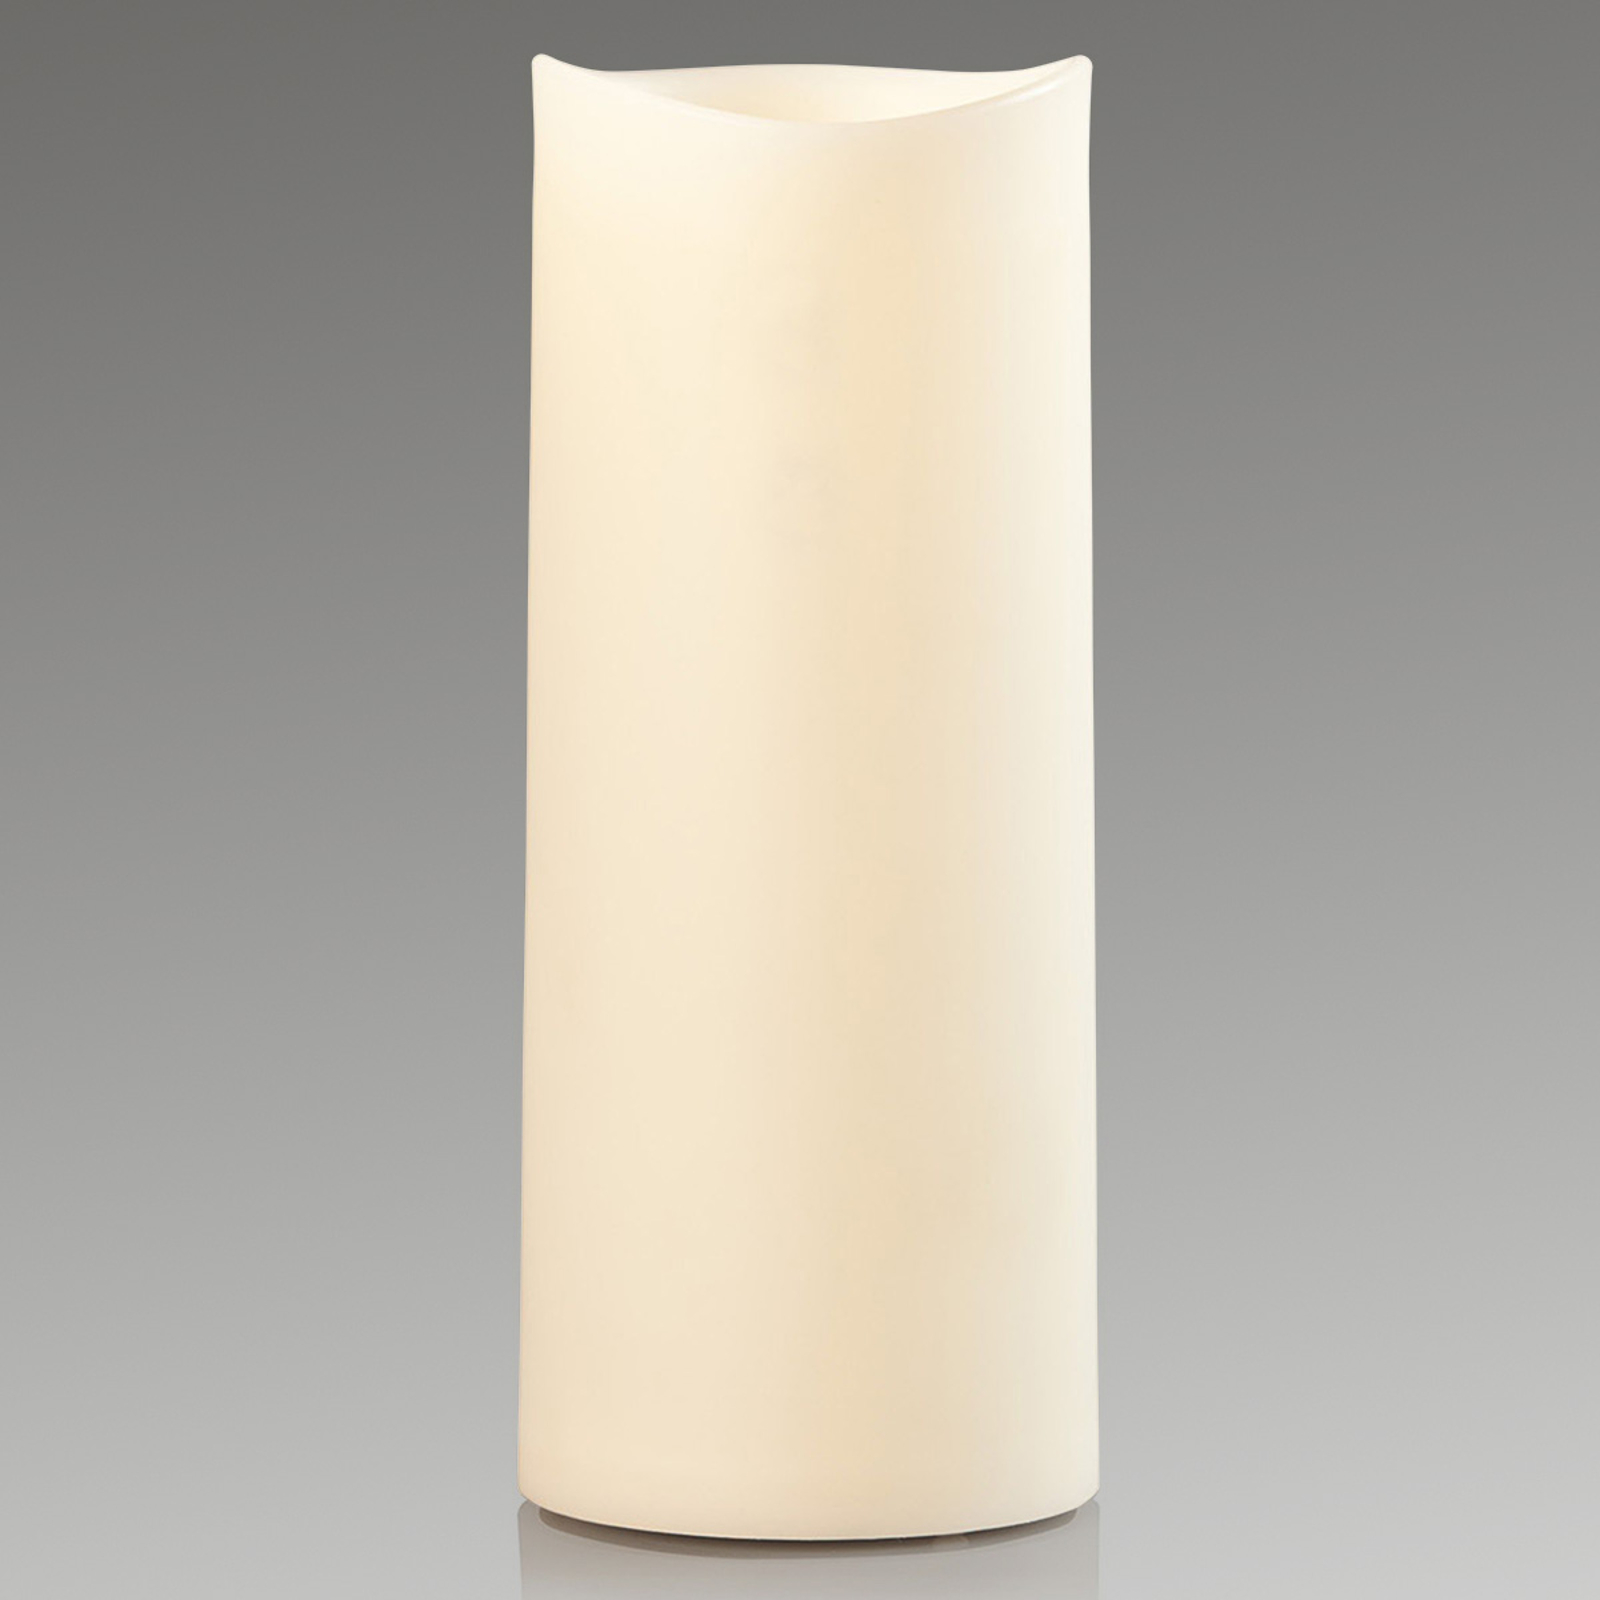 LED-dekorlys Outfdoor Candle, 22cm